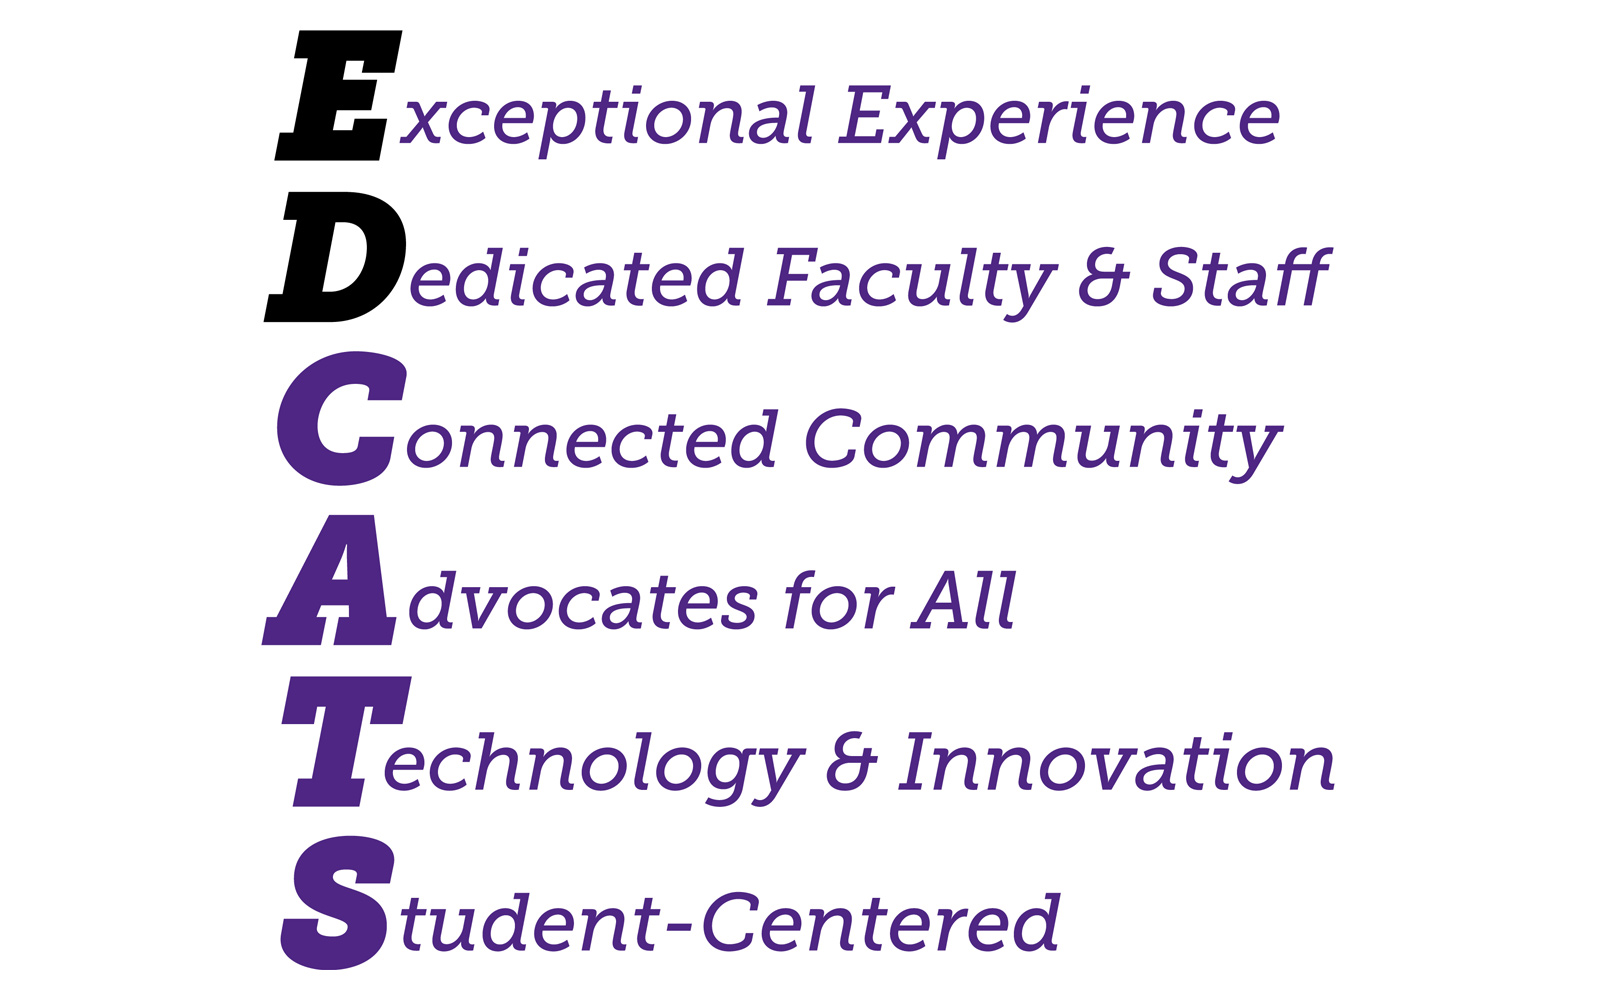 EDCATS = Exceptional Experience, Dedicated Faculty & Staff, Connected Community, Advocates for All, Technology & Innovation, and Student-Centered